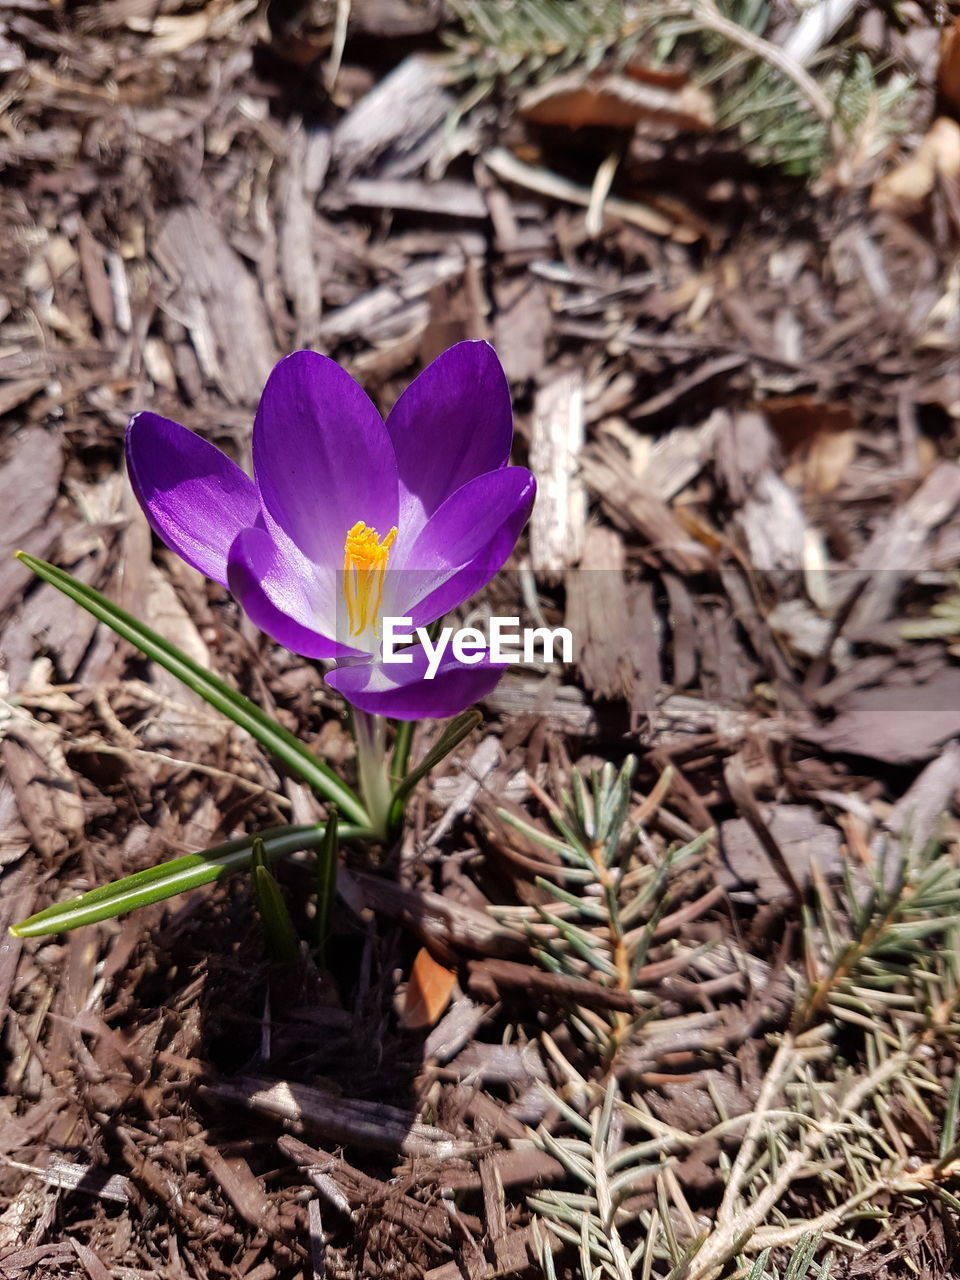 flowering plant, flower, plant, petal, freshness, beauty in nature, growth, vulnerability, fragility, close-up, nature, inflorescence, flower head, land, purple, crocus, field, iris, no people, high angle view, pollen, outdoors